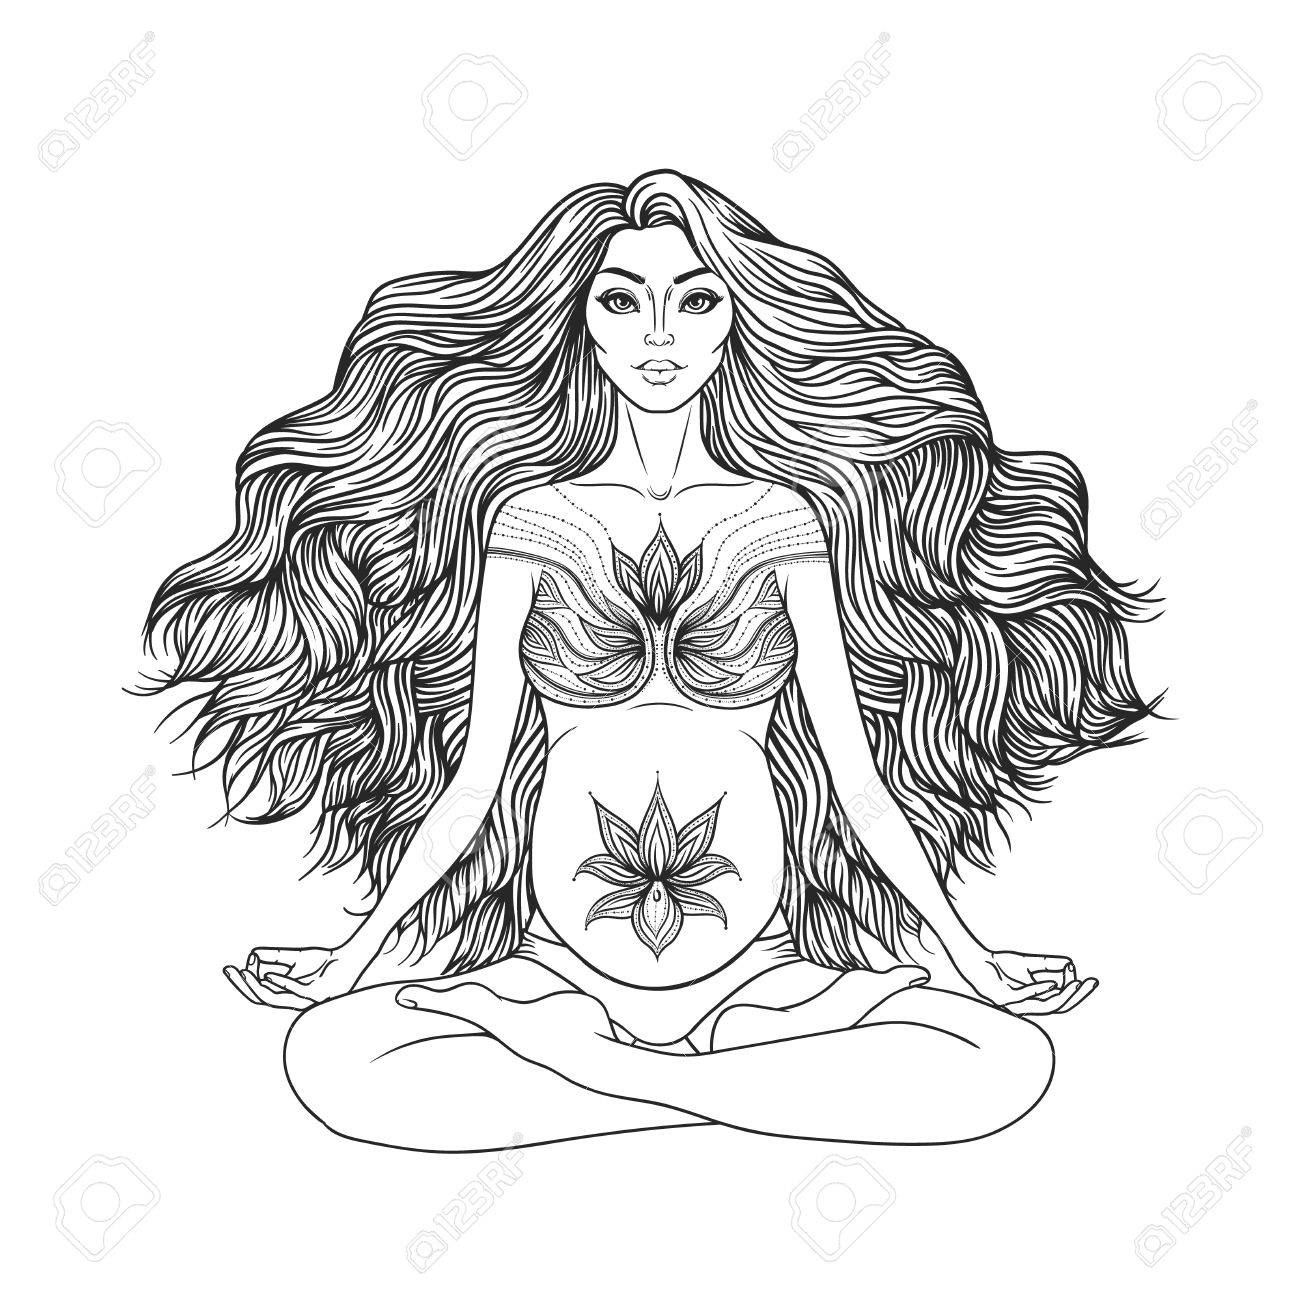 Hand Drawn Vector Illustration Of Pregnant Woman Sitting In Lotus Pose Yoga Meditation Stock